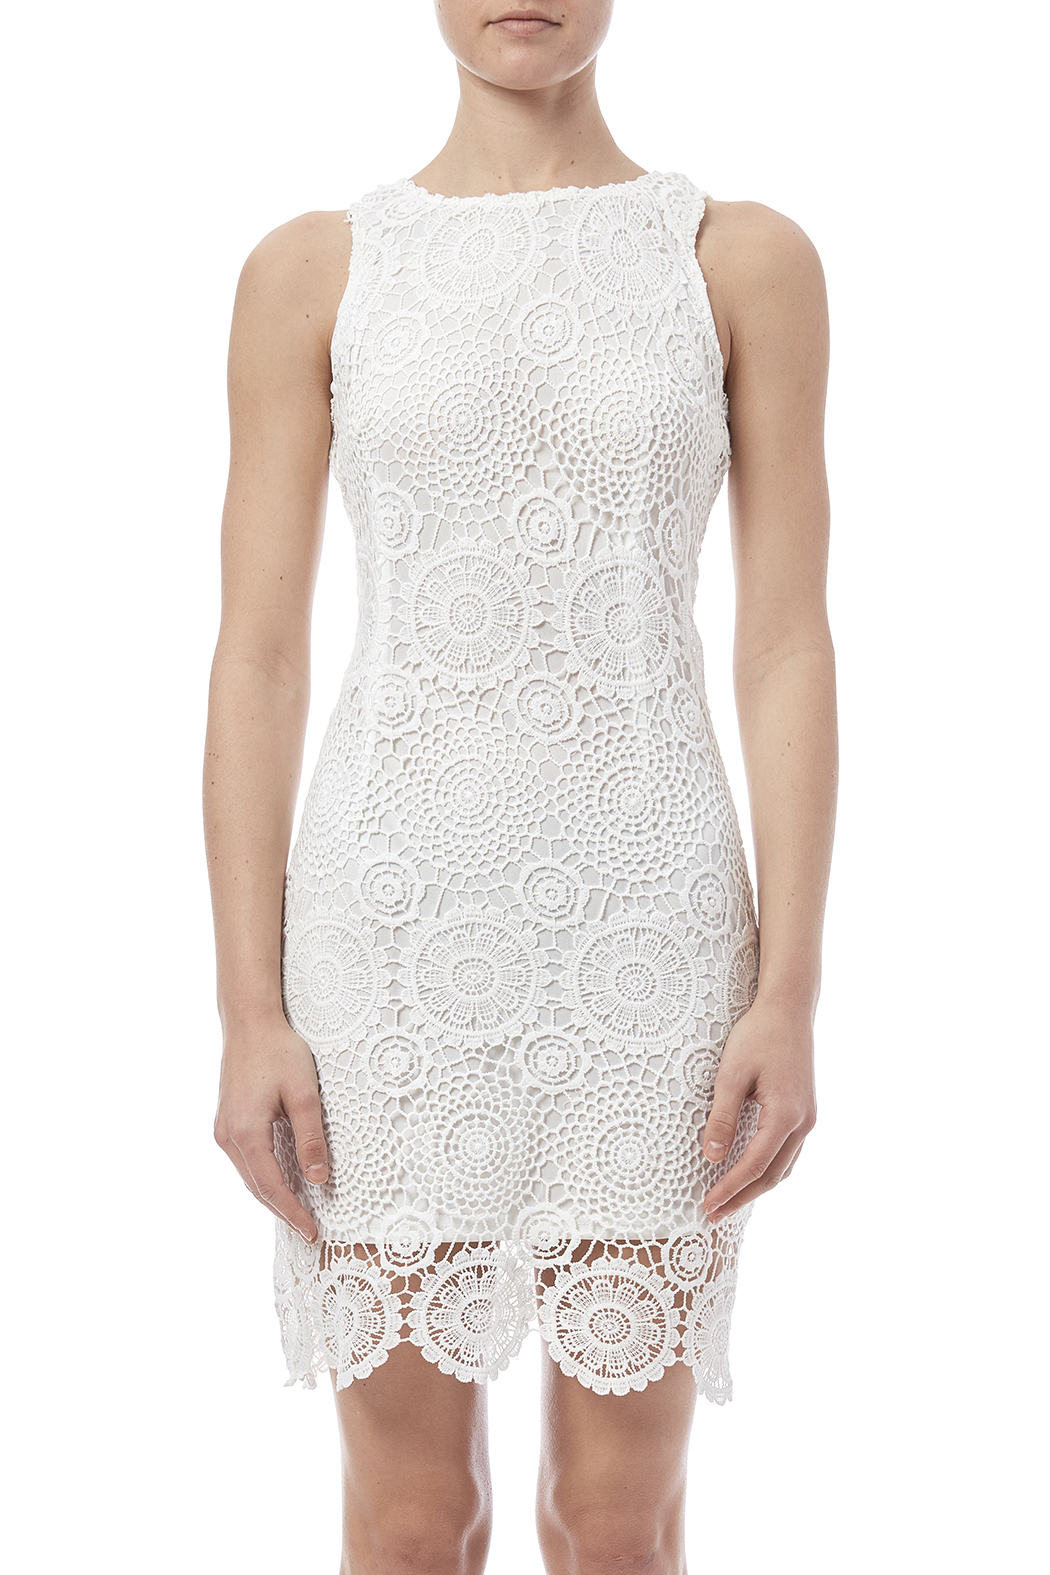 fashion on earth Crochet Overlay Dress - Side Cropped Image